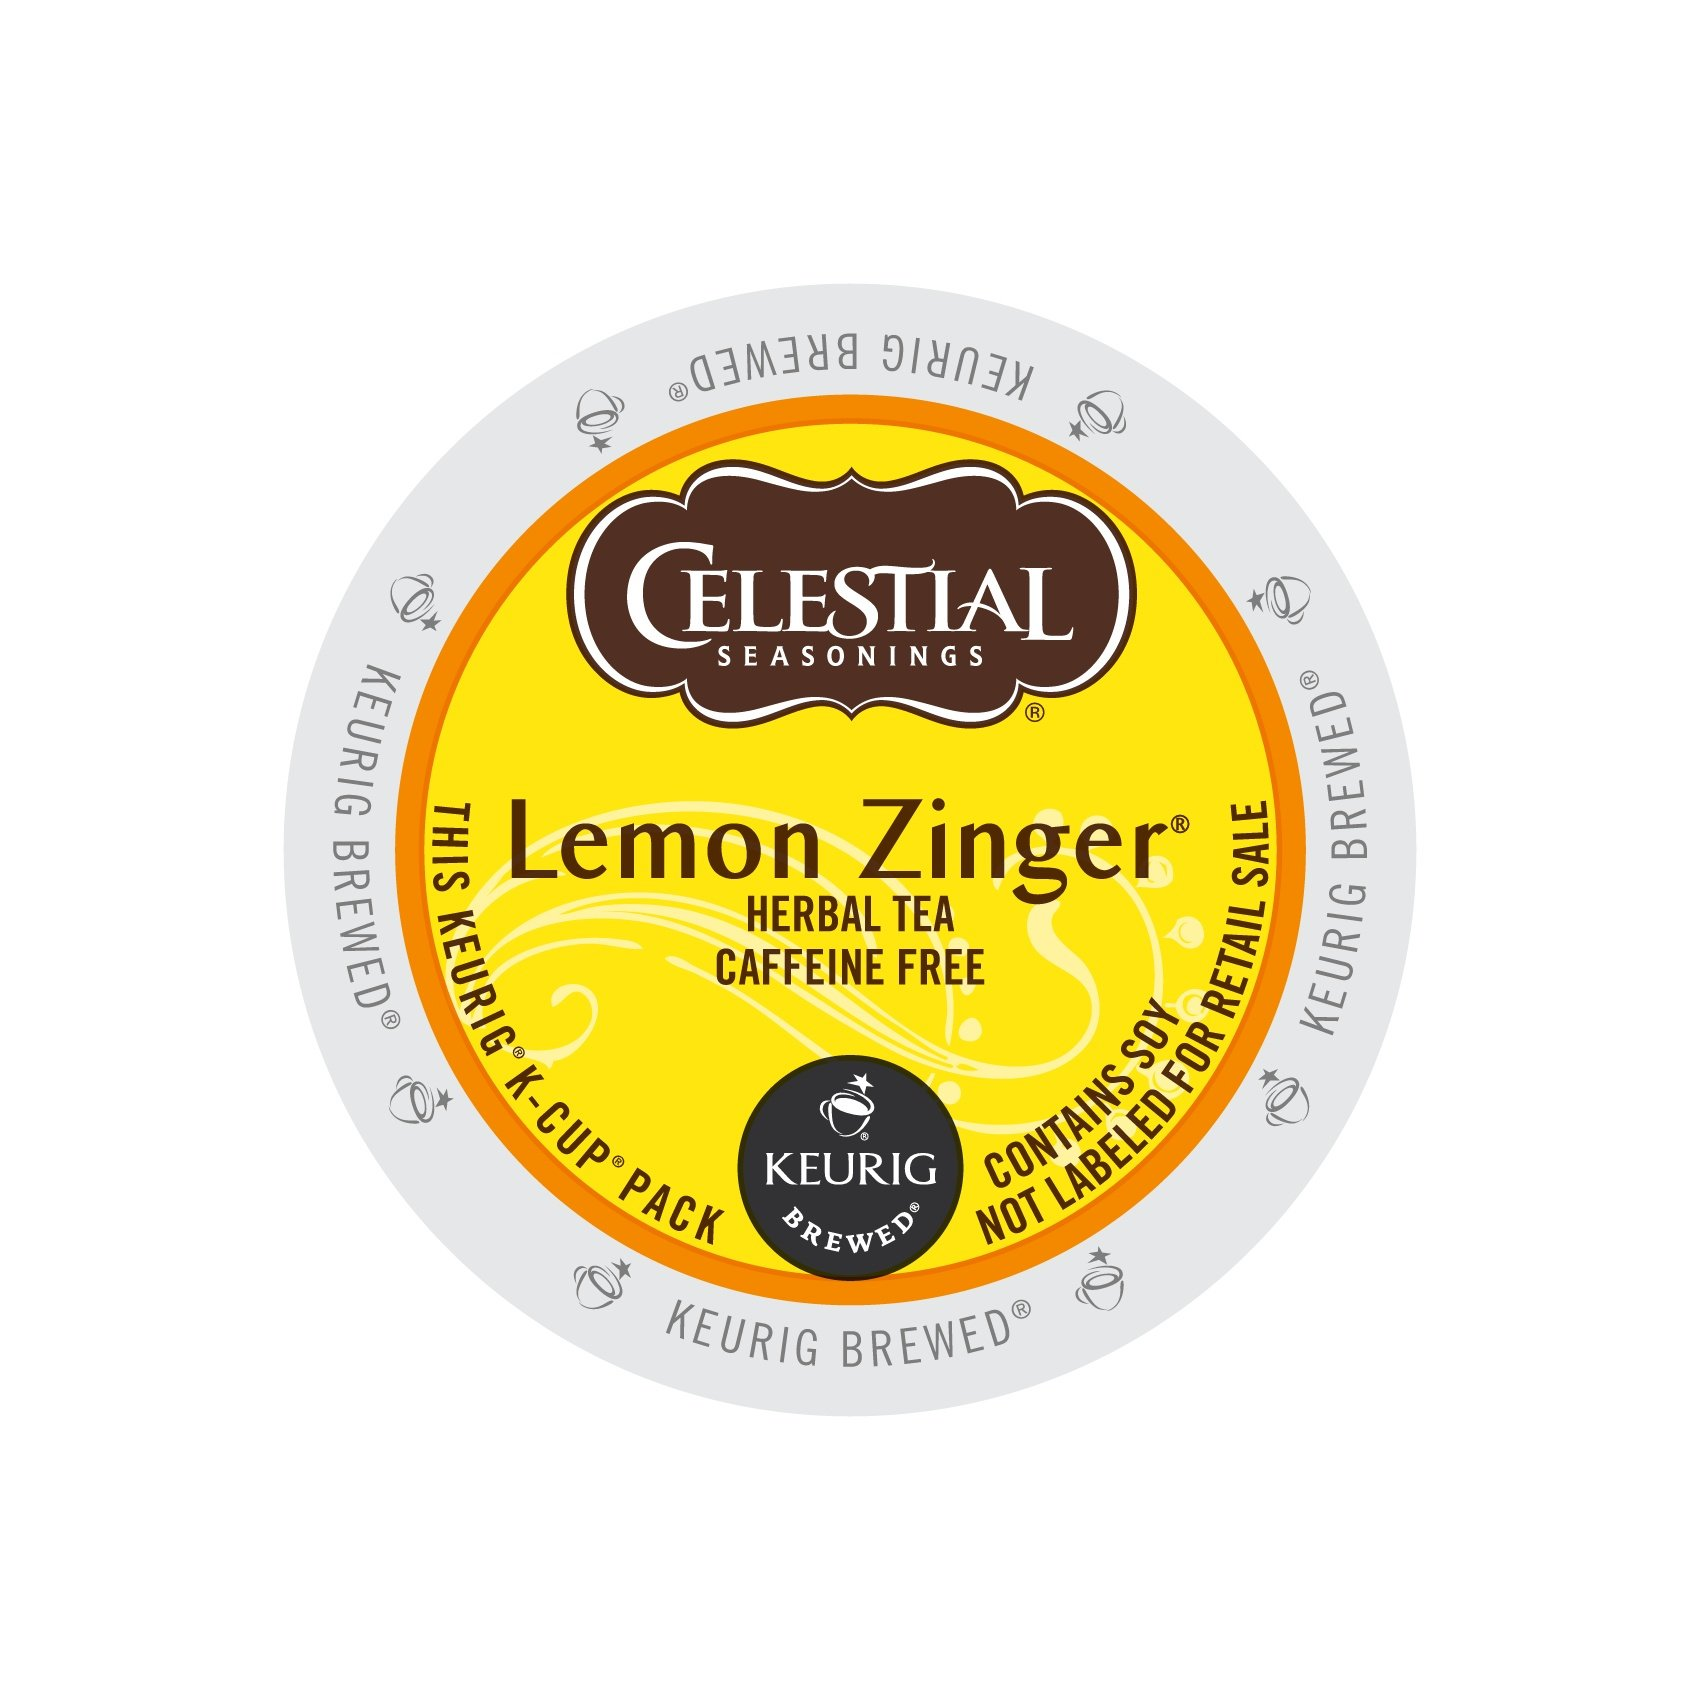 Celestial Seasonings 14732CT Lemon Zinger Herbal Tea K-Cups, 96/carton by Celestial Seasonings